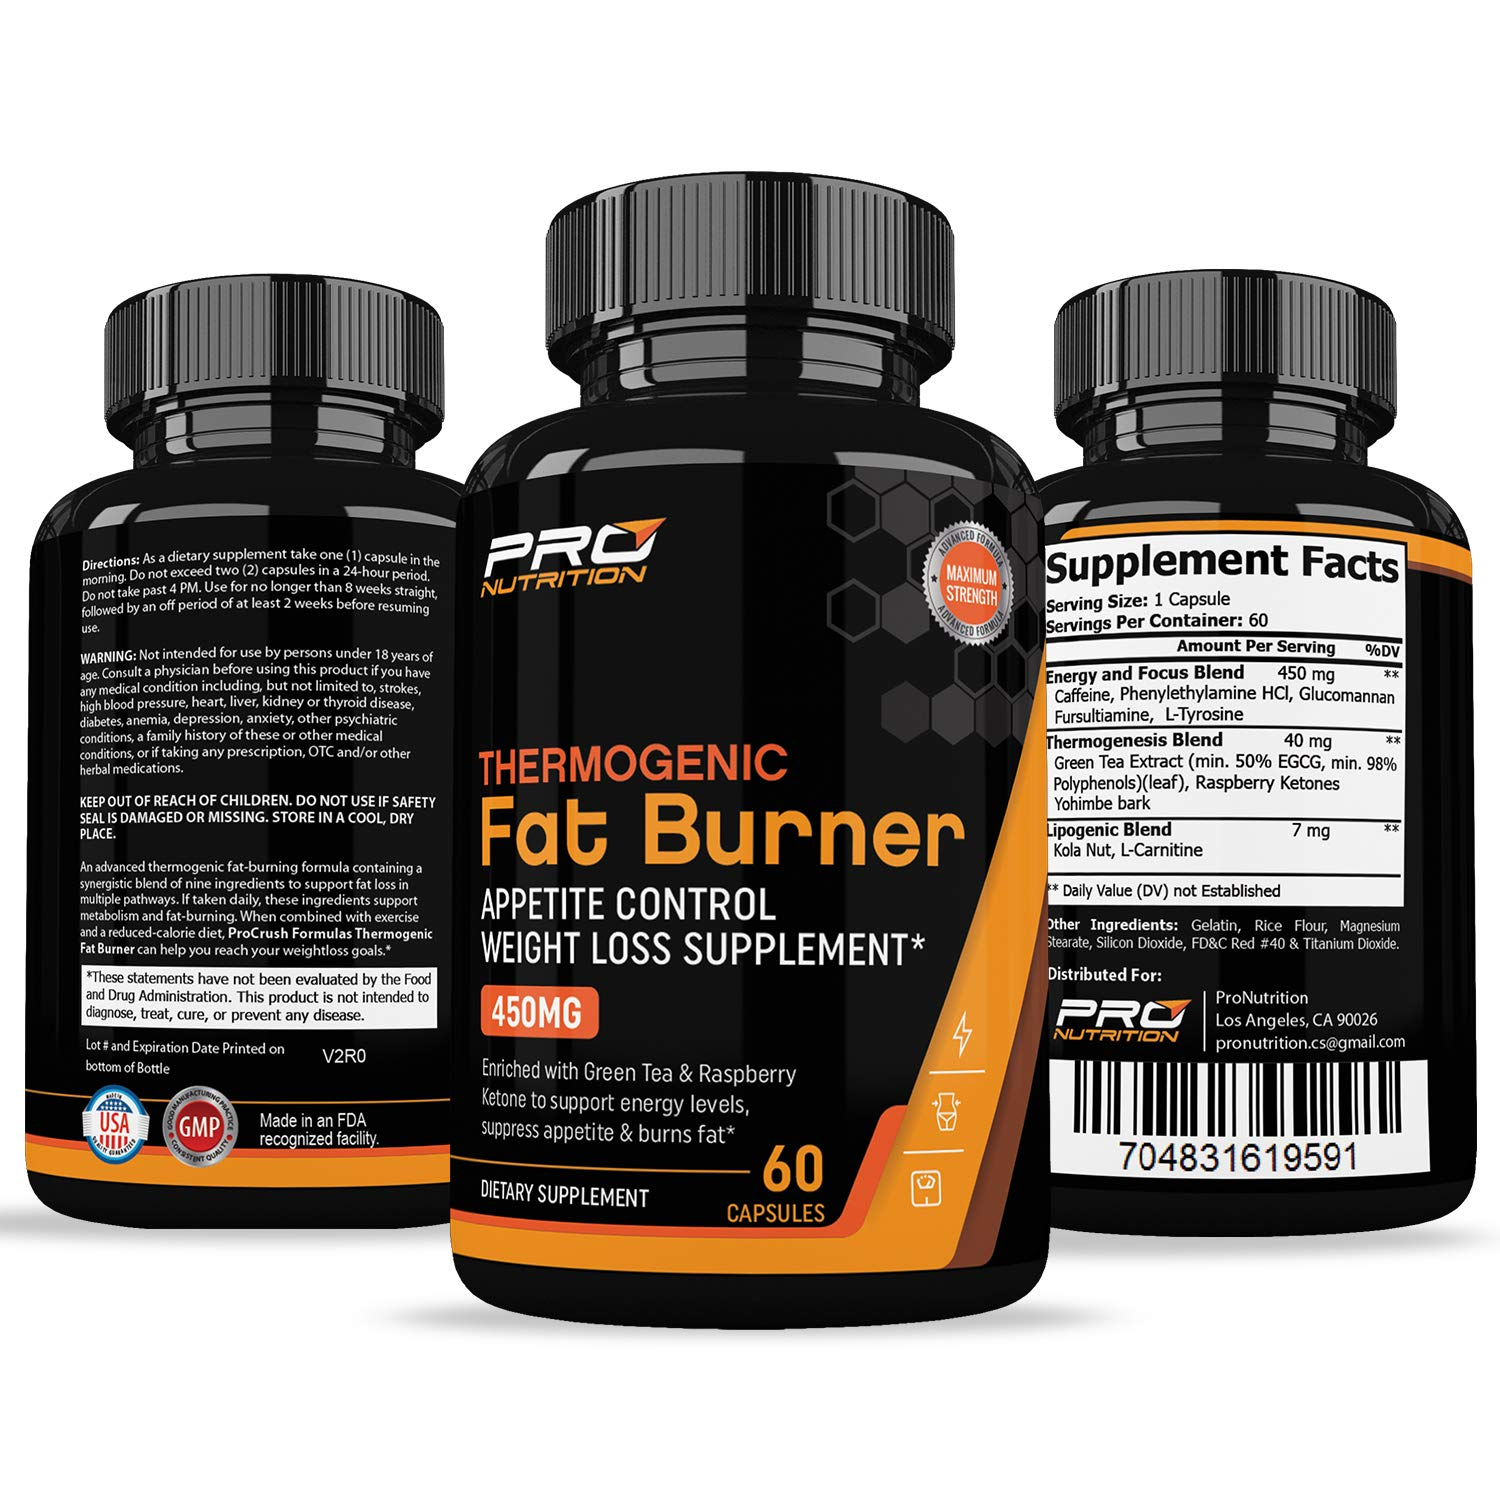 Thermogenic Fat Burner & Appetite Control Weight Loss Supplement- Revolutionary Formula That Increases Metabolism & Burns Fat. Superior Appetite Suppressant & Increases Energy for Men & Women by ProNutrition